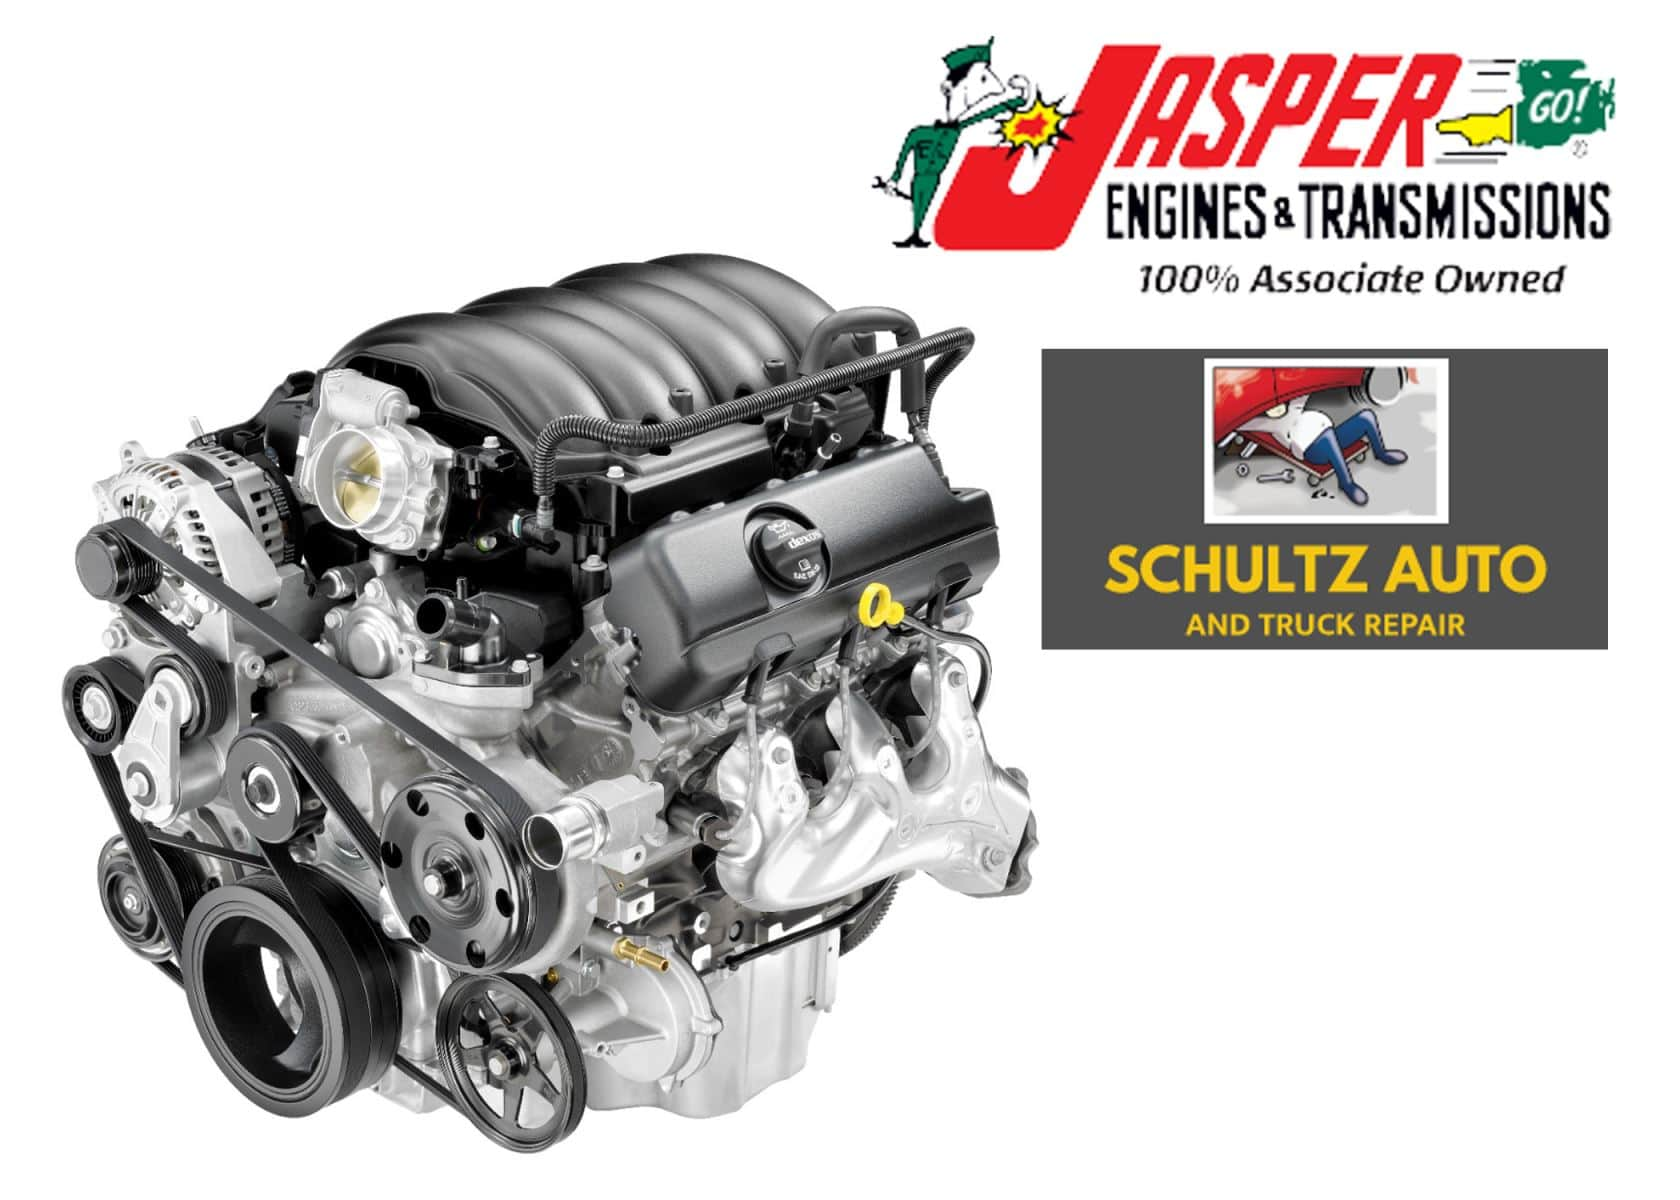 Schultz Auto and Truck Repair is an Exclusive Provider of Jasper Engines & Transmissions